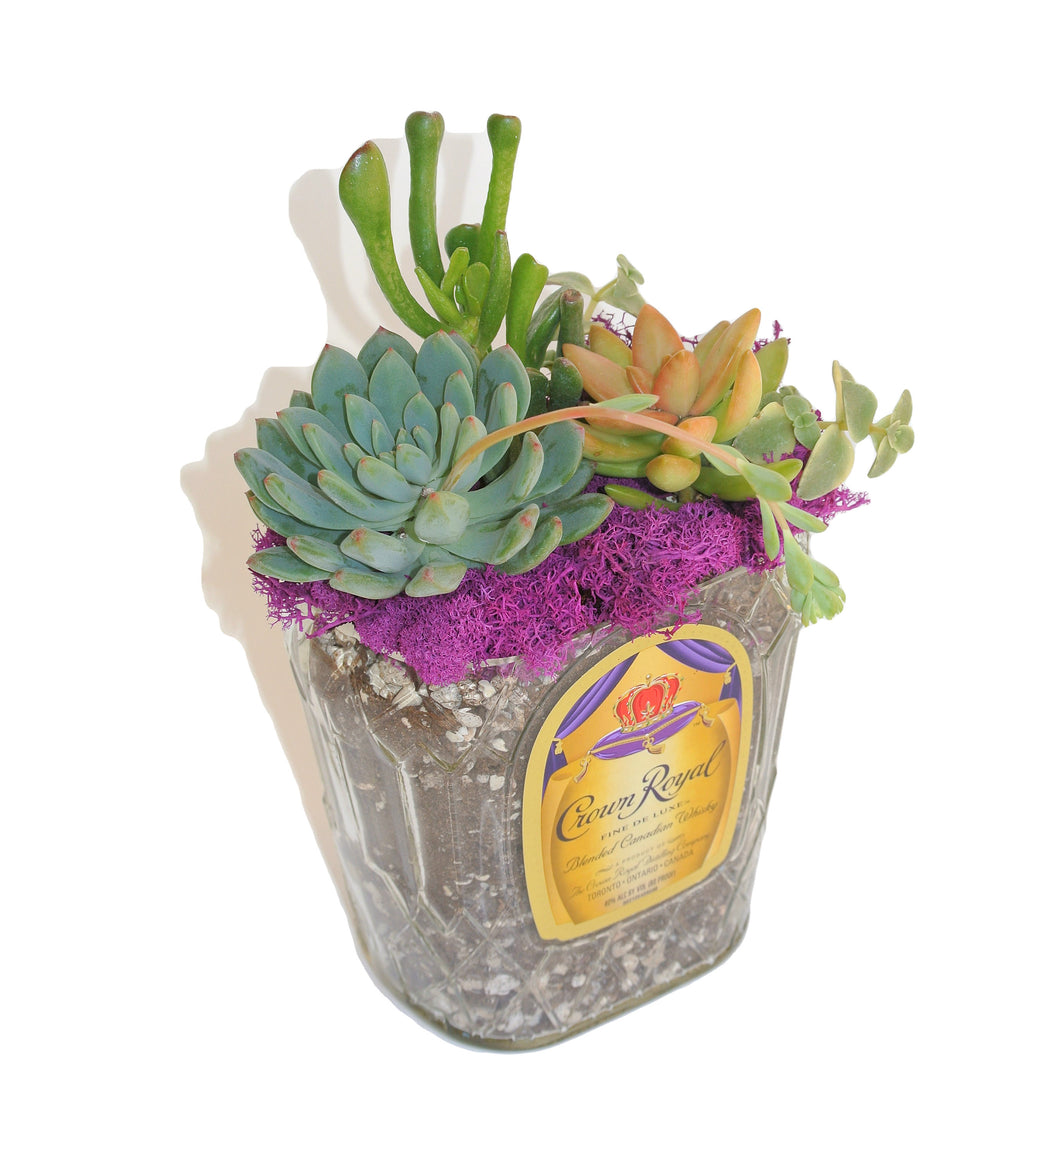 Crown Royal Whiskey Bottle Planter with DRAINAGE! - Succulent Gift